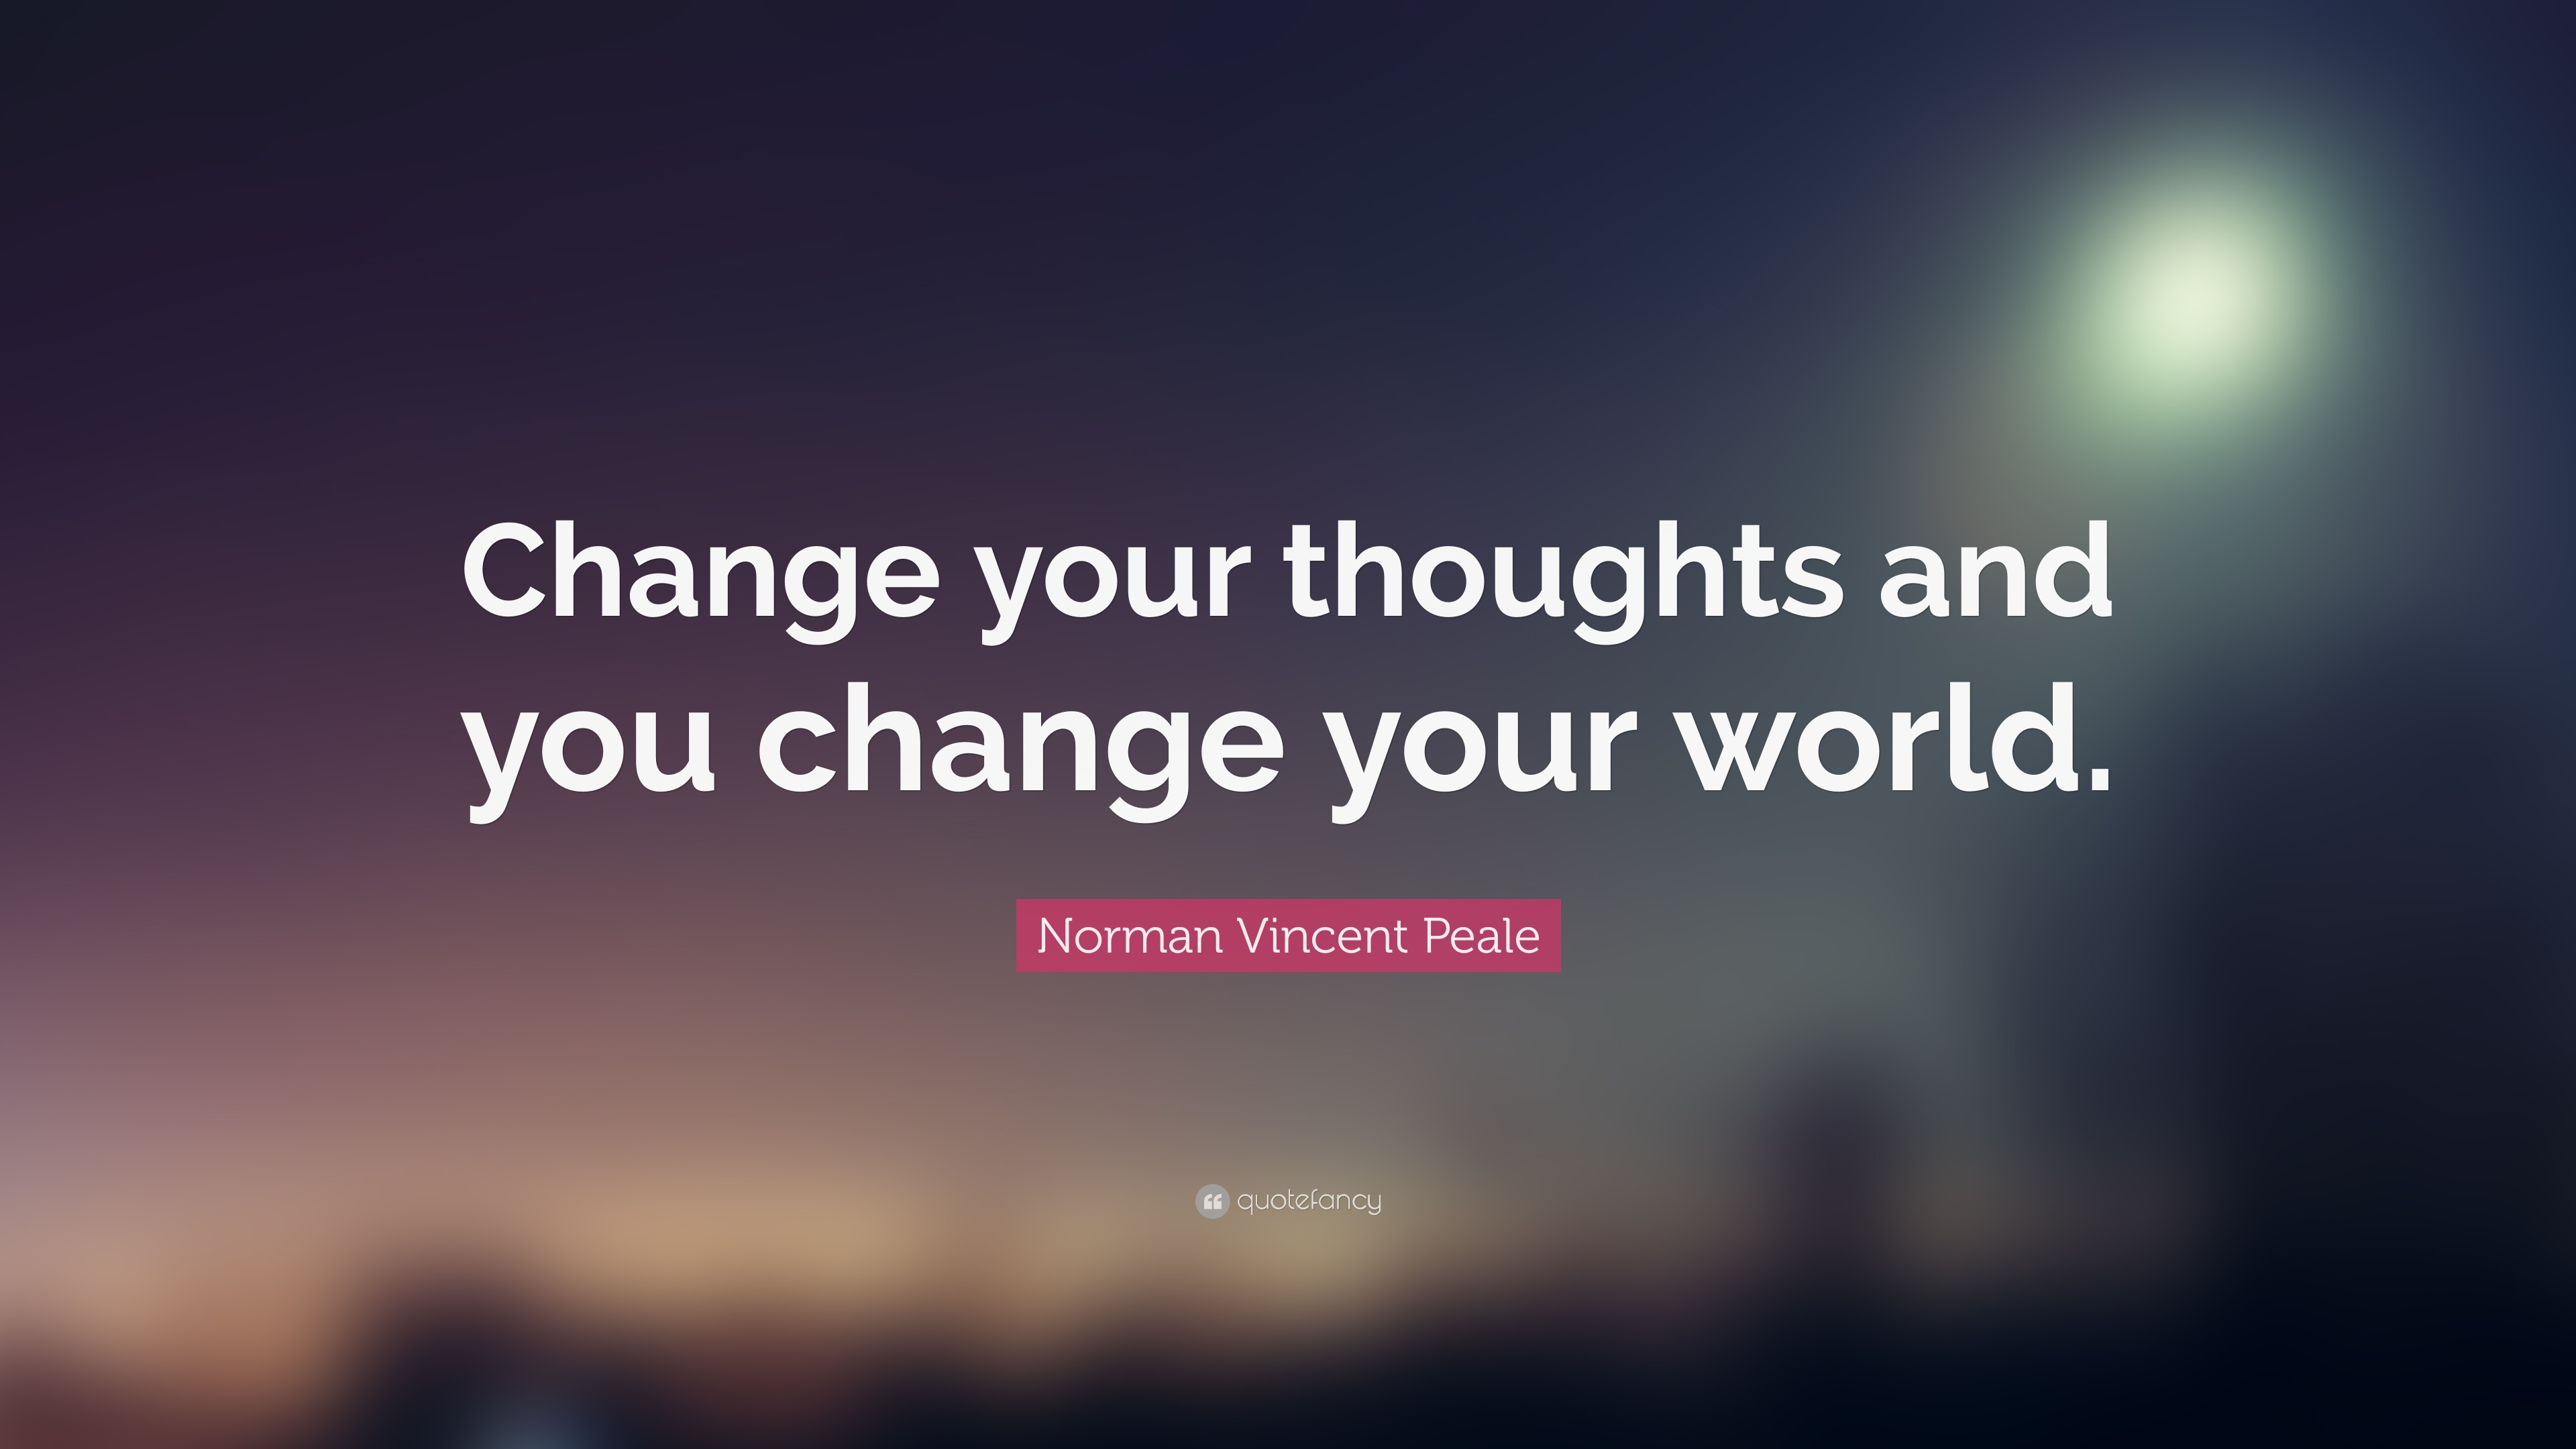 Norman Vincent Peale Quote: U201cChange Your Thoughts And You Change Your  World.u201d